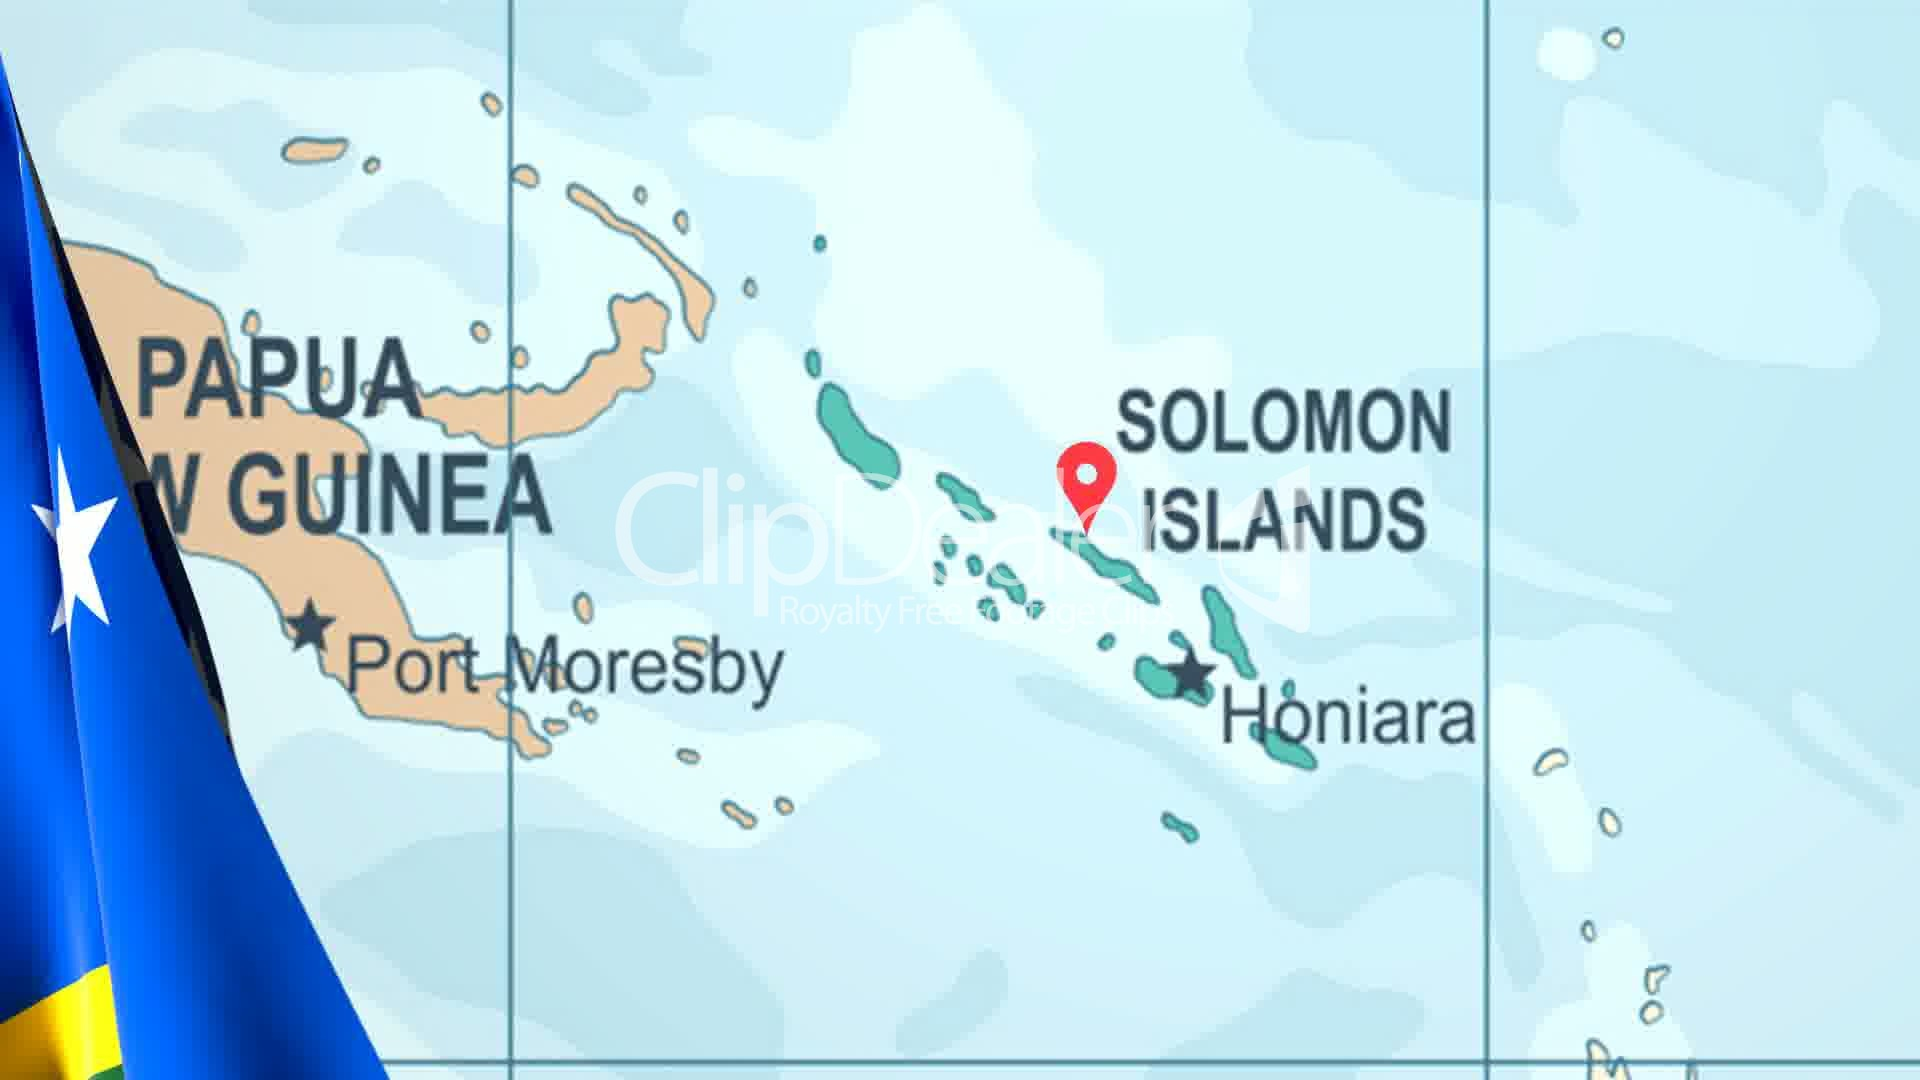 Solomon Islands World Map.Animated Flag Of The Solomon Islands With A Pin On A Worldmap